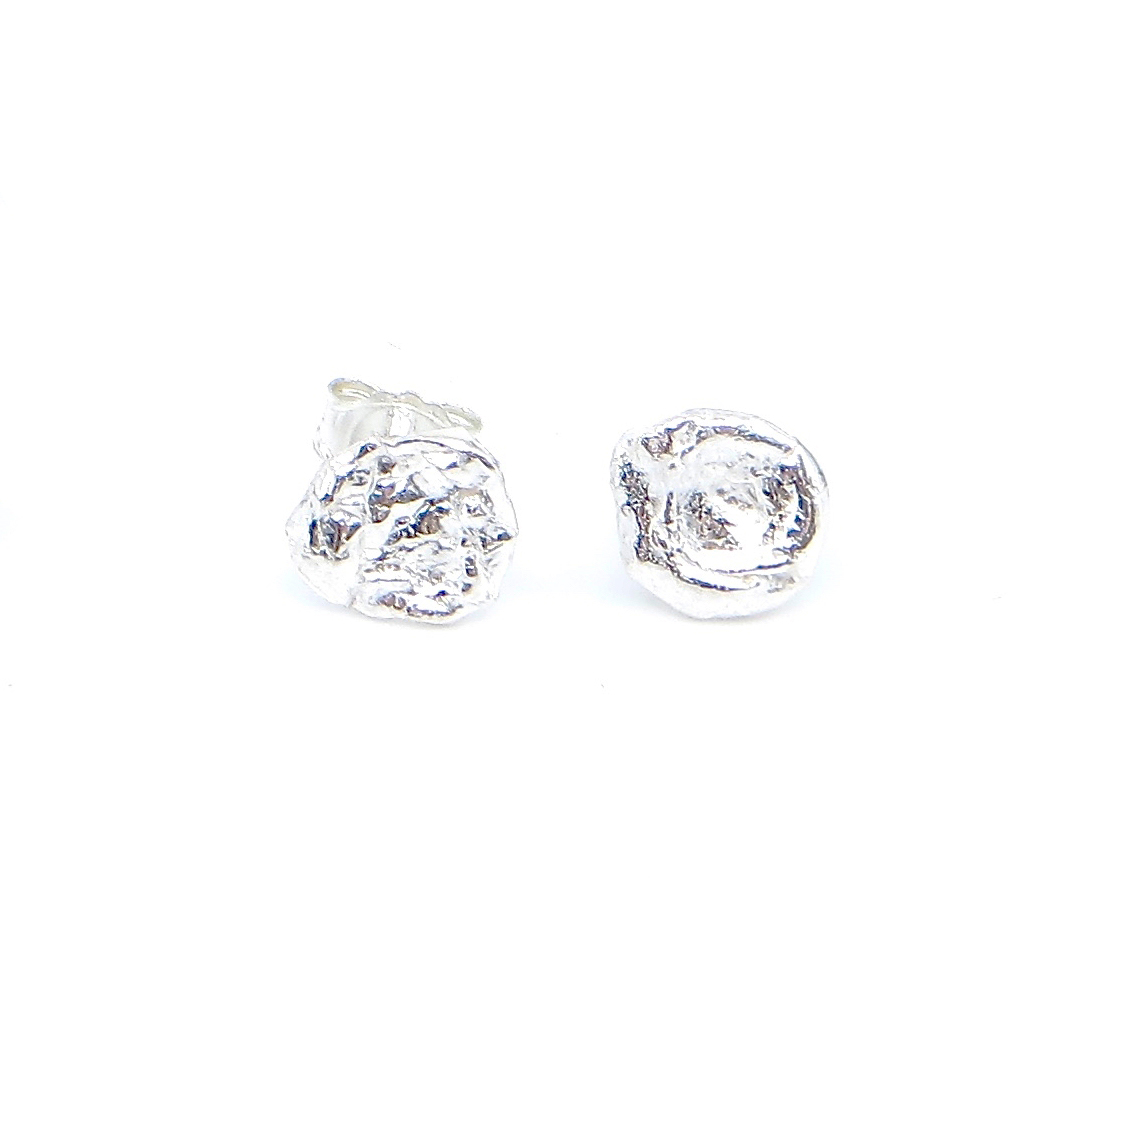 Stud earrings, water cast sterling silver, $80